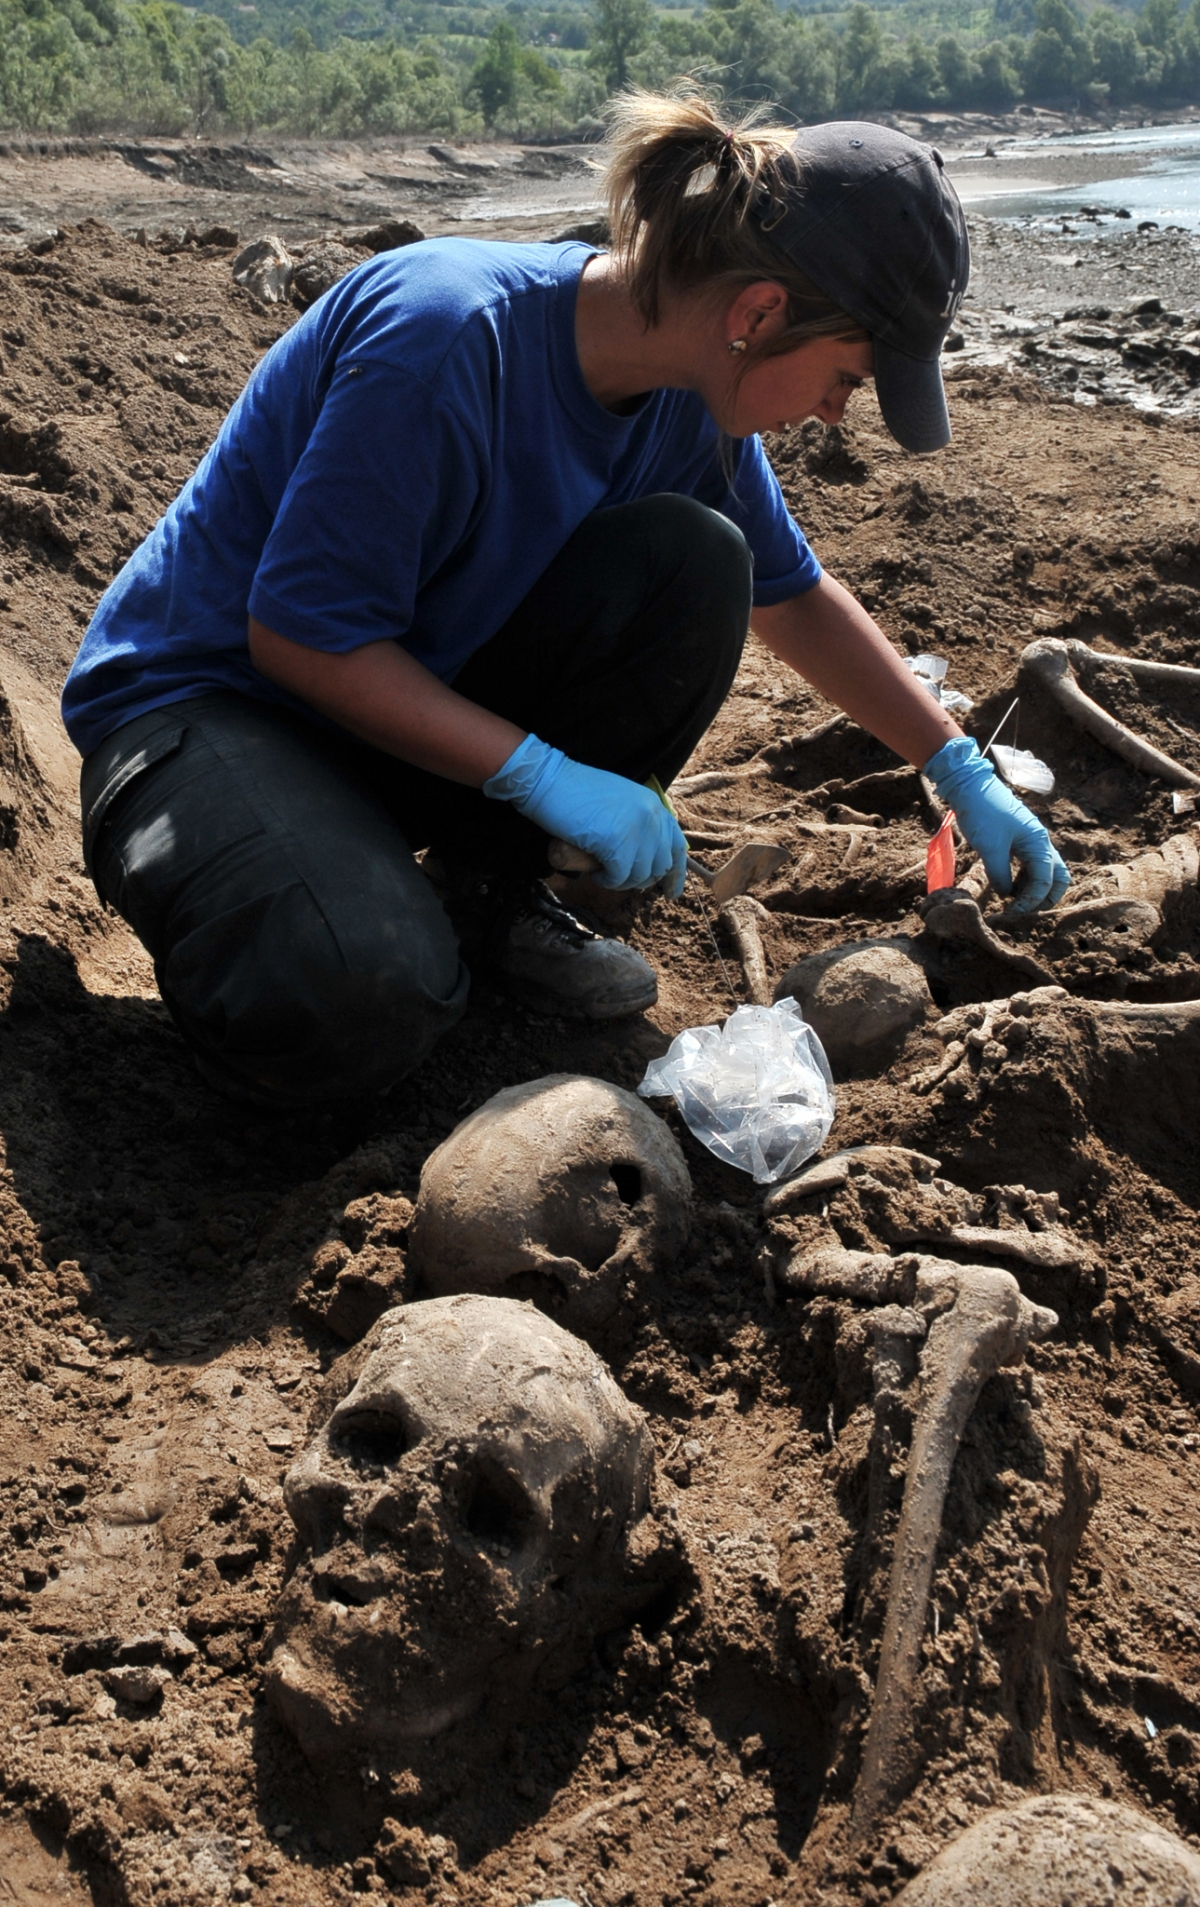 forensic expert from the International Commission On Missing Persons uncovers human remains near the eastern Bosnian town of Visegrad